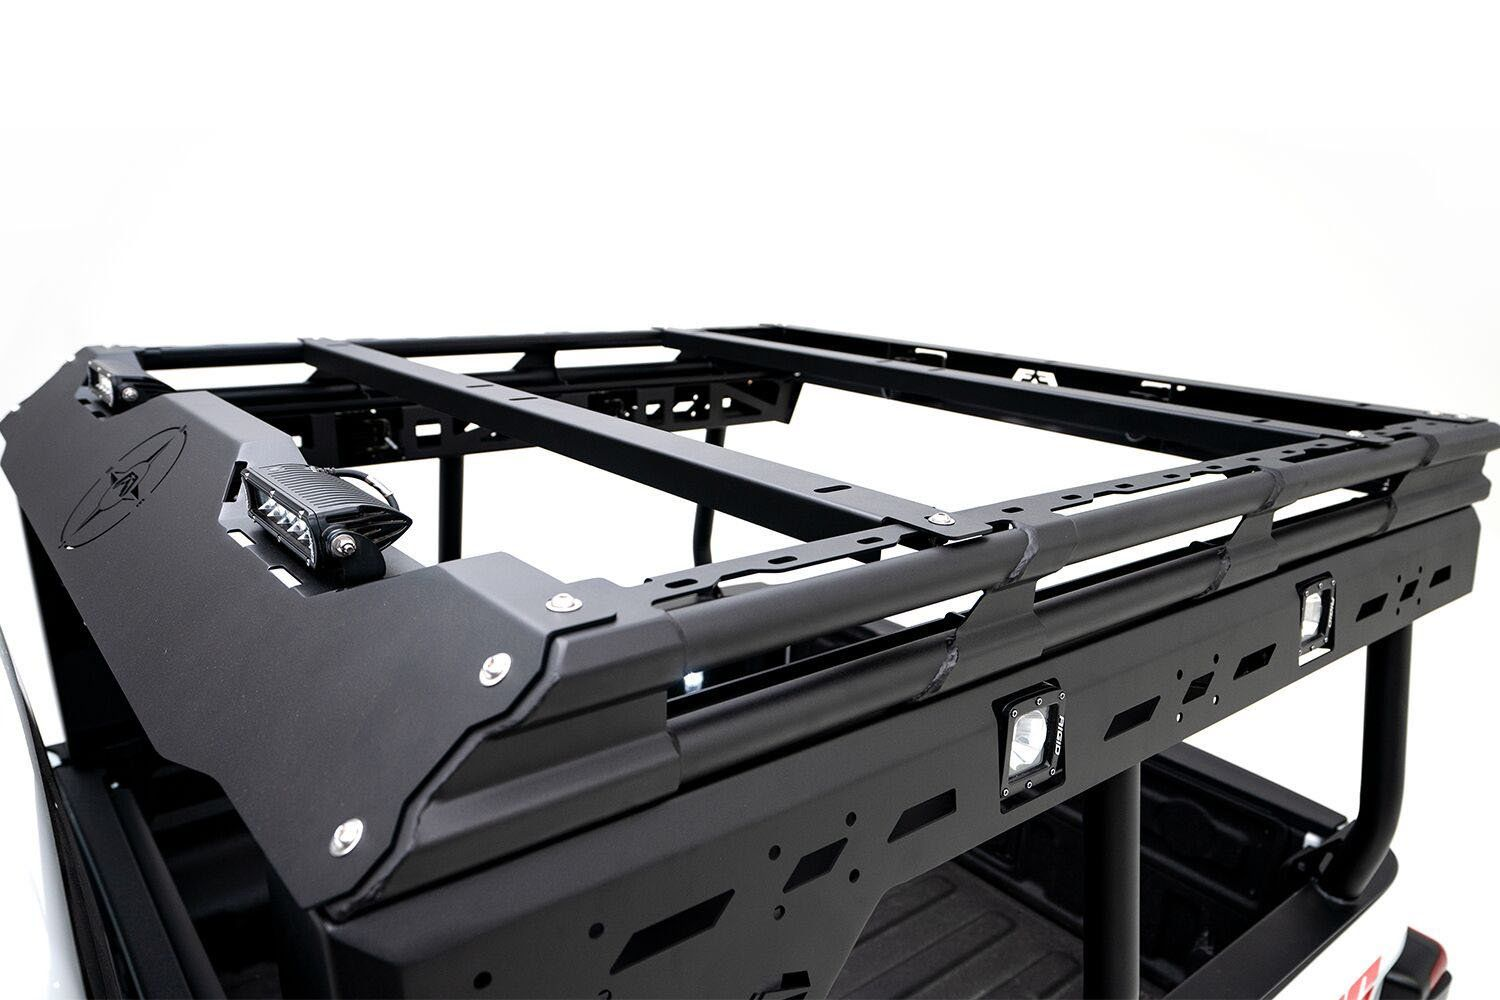 Fab Fours Overland Rack For 20 21 Jeep Gladiator Jt In 2020 Jeep Gladiator Jeep Gladiator